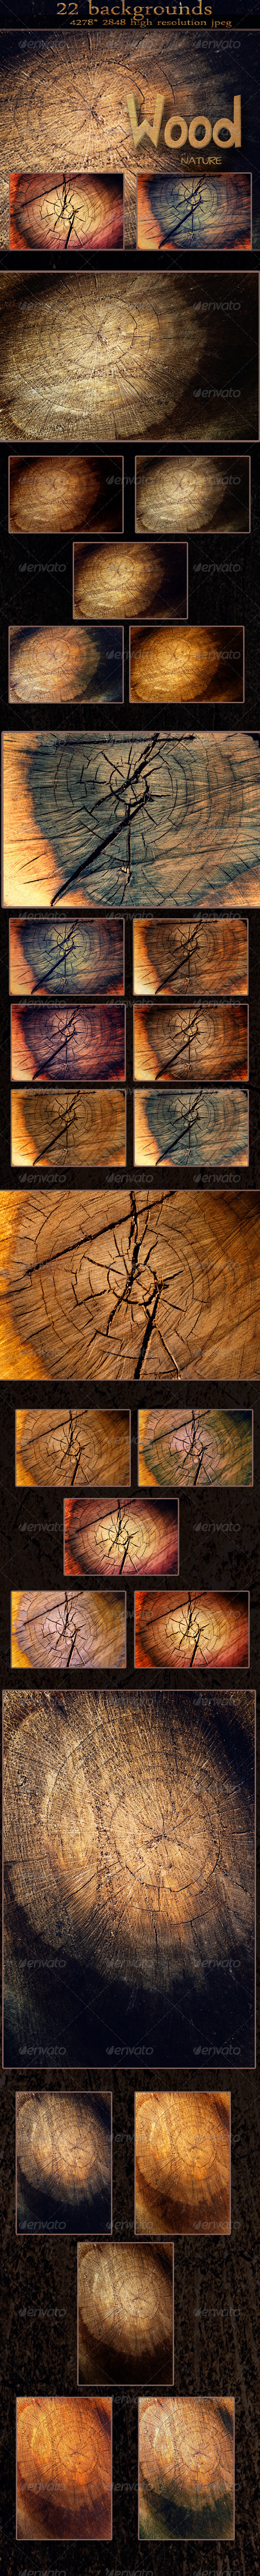 Nature Backgrounds with Tree textures - Backgrounds Graphics